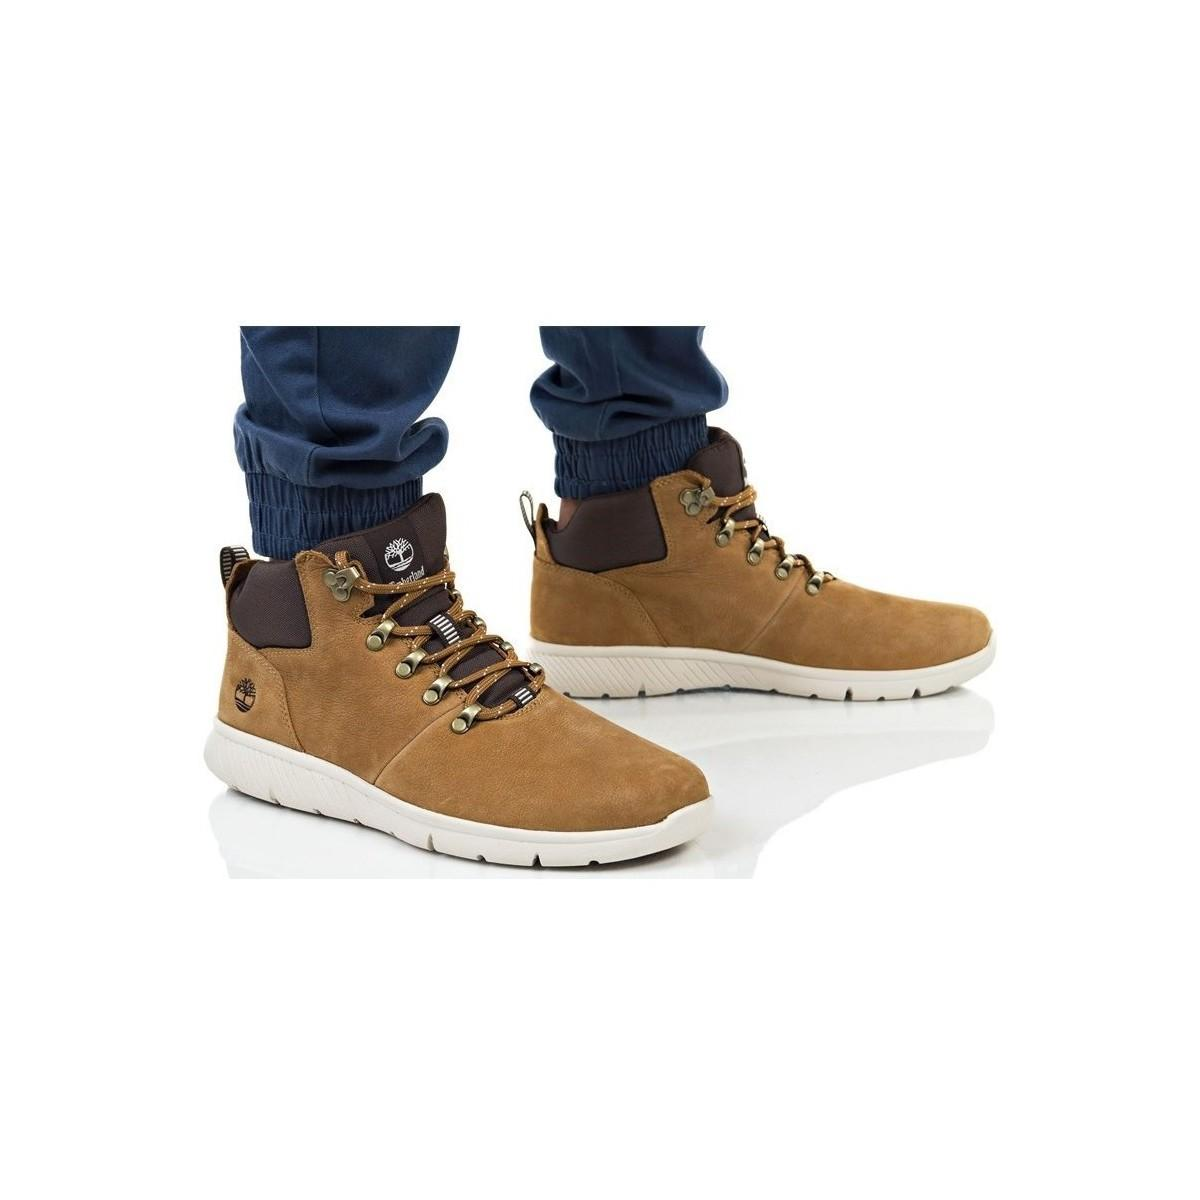 Timberland Boltero Leather Shoe Men's Hiking